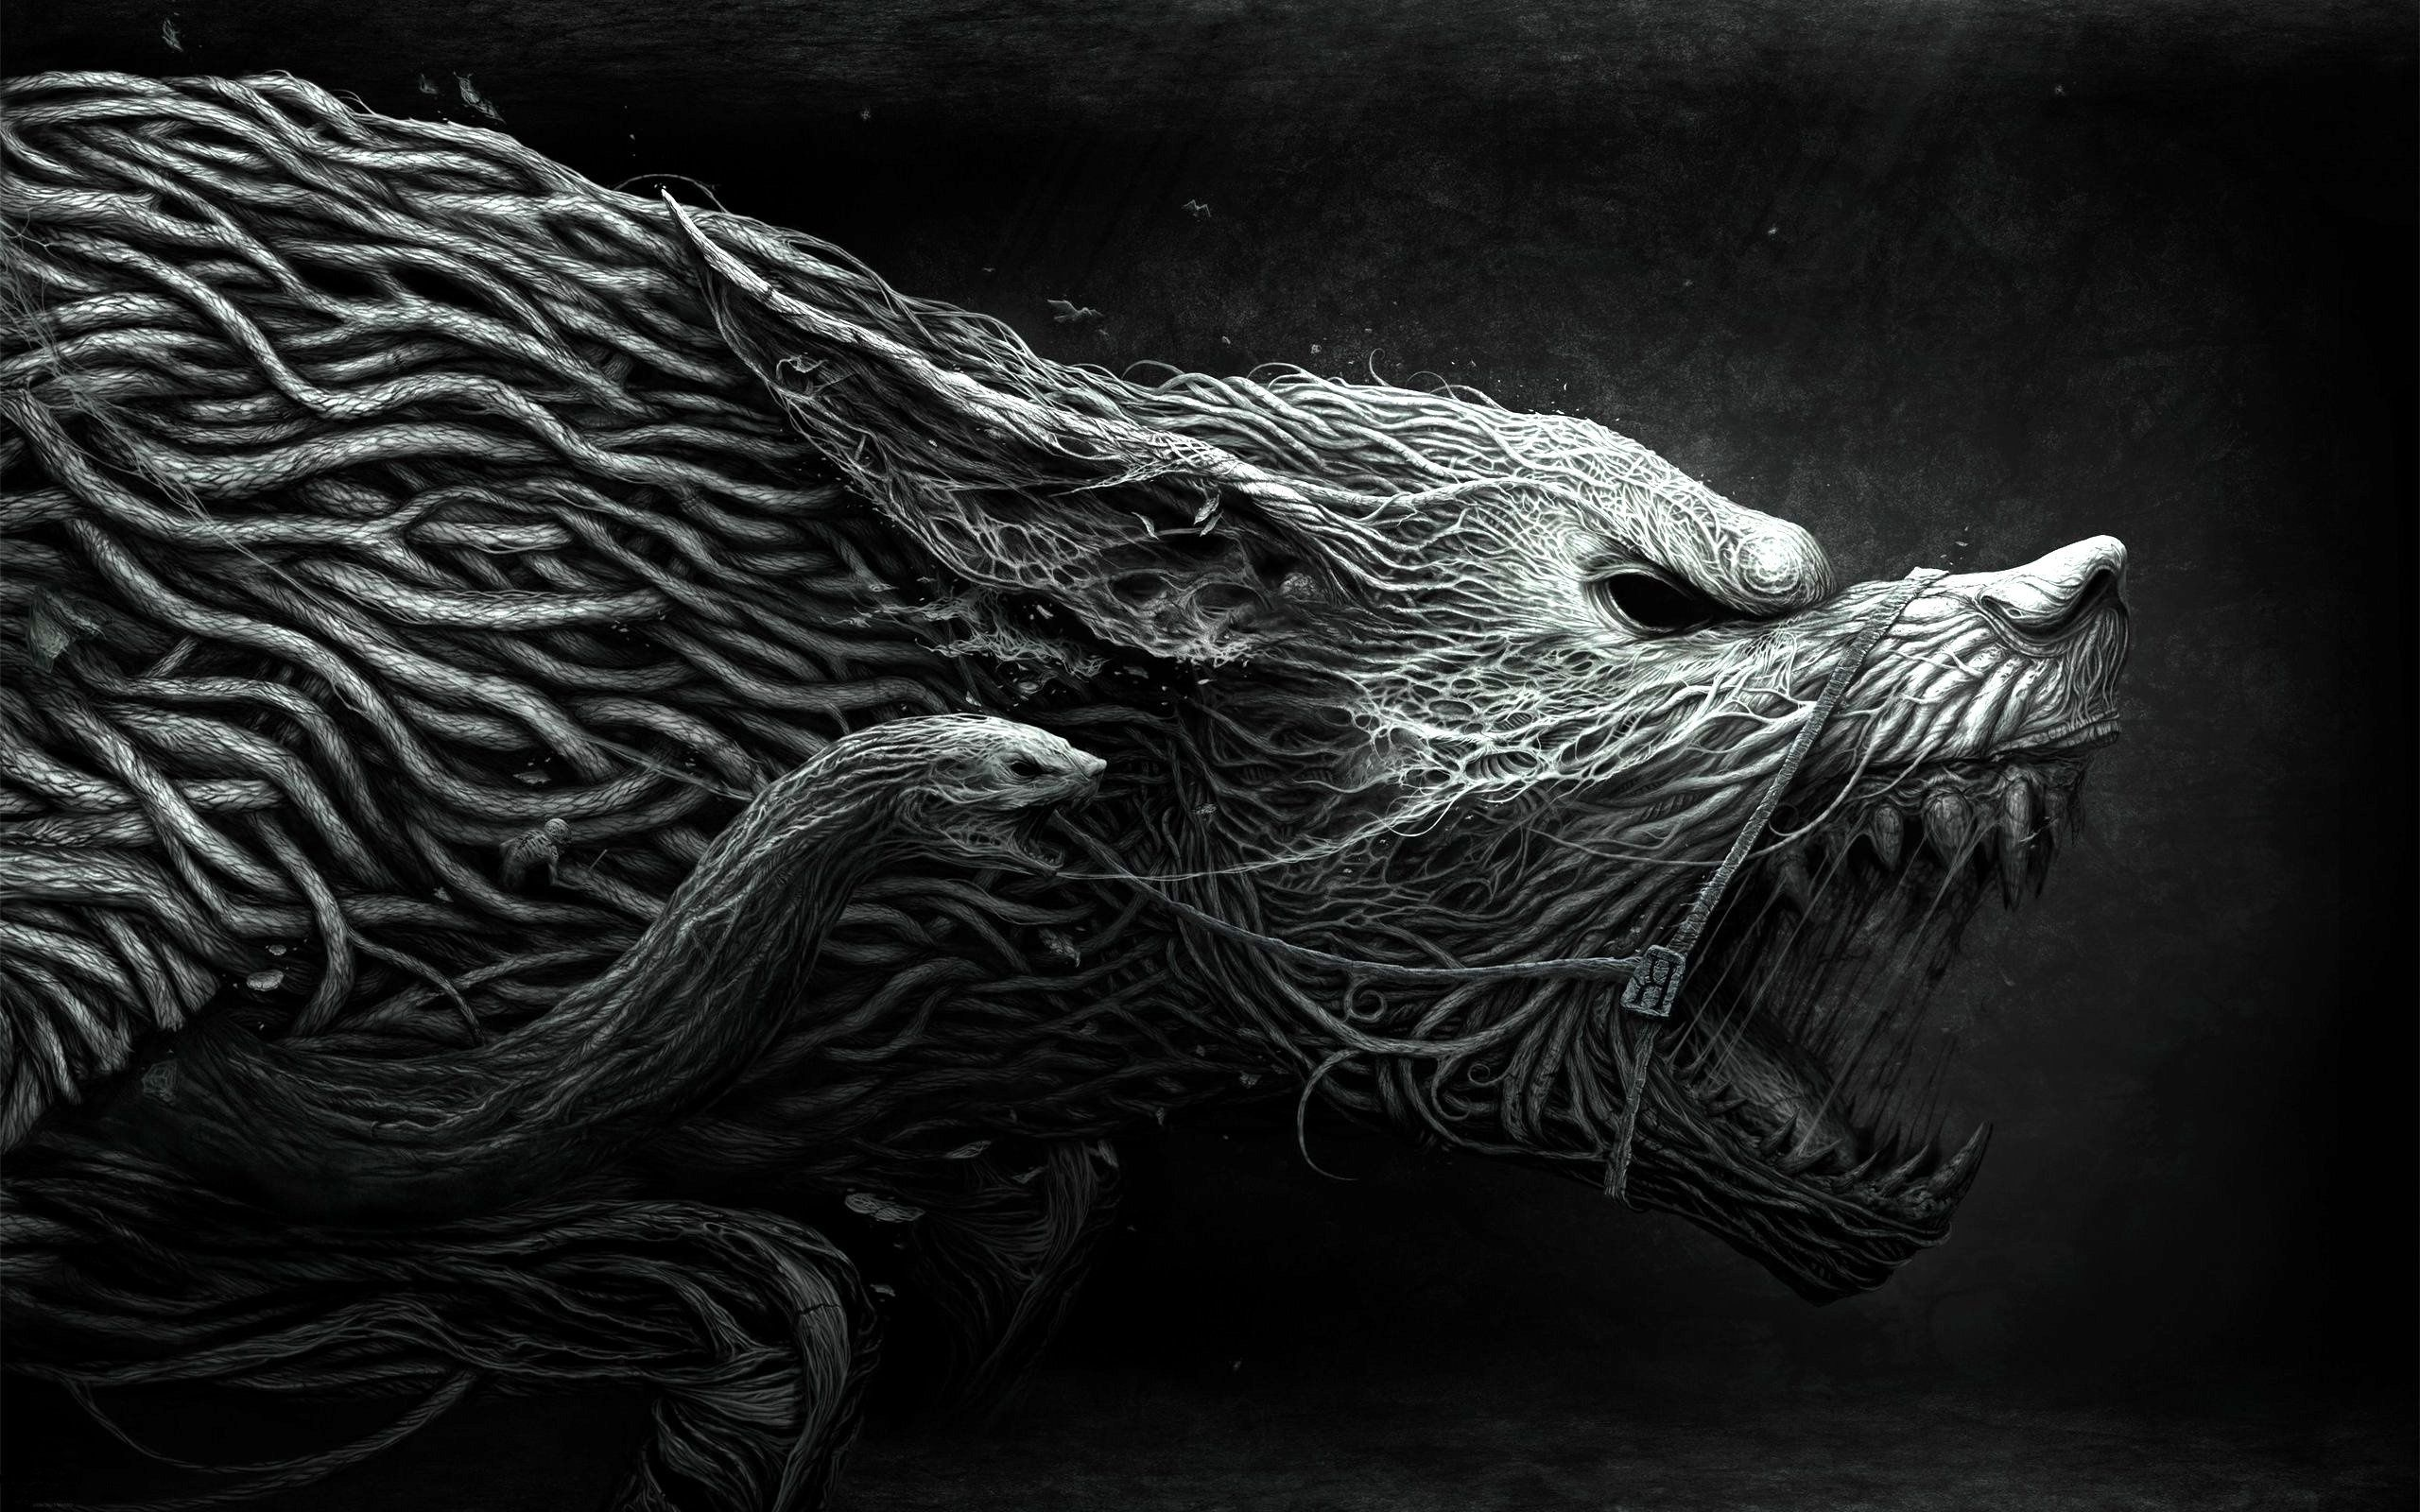 Creature fantasy wolf with snake wallpaper digital pinterest creature fantasy wolf with snake wallpaper voltagebd Image collections